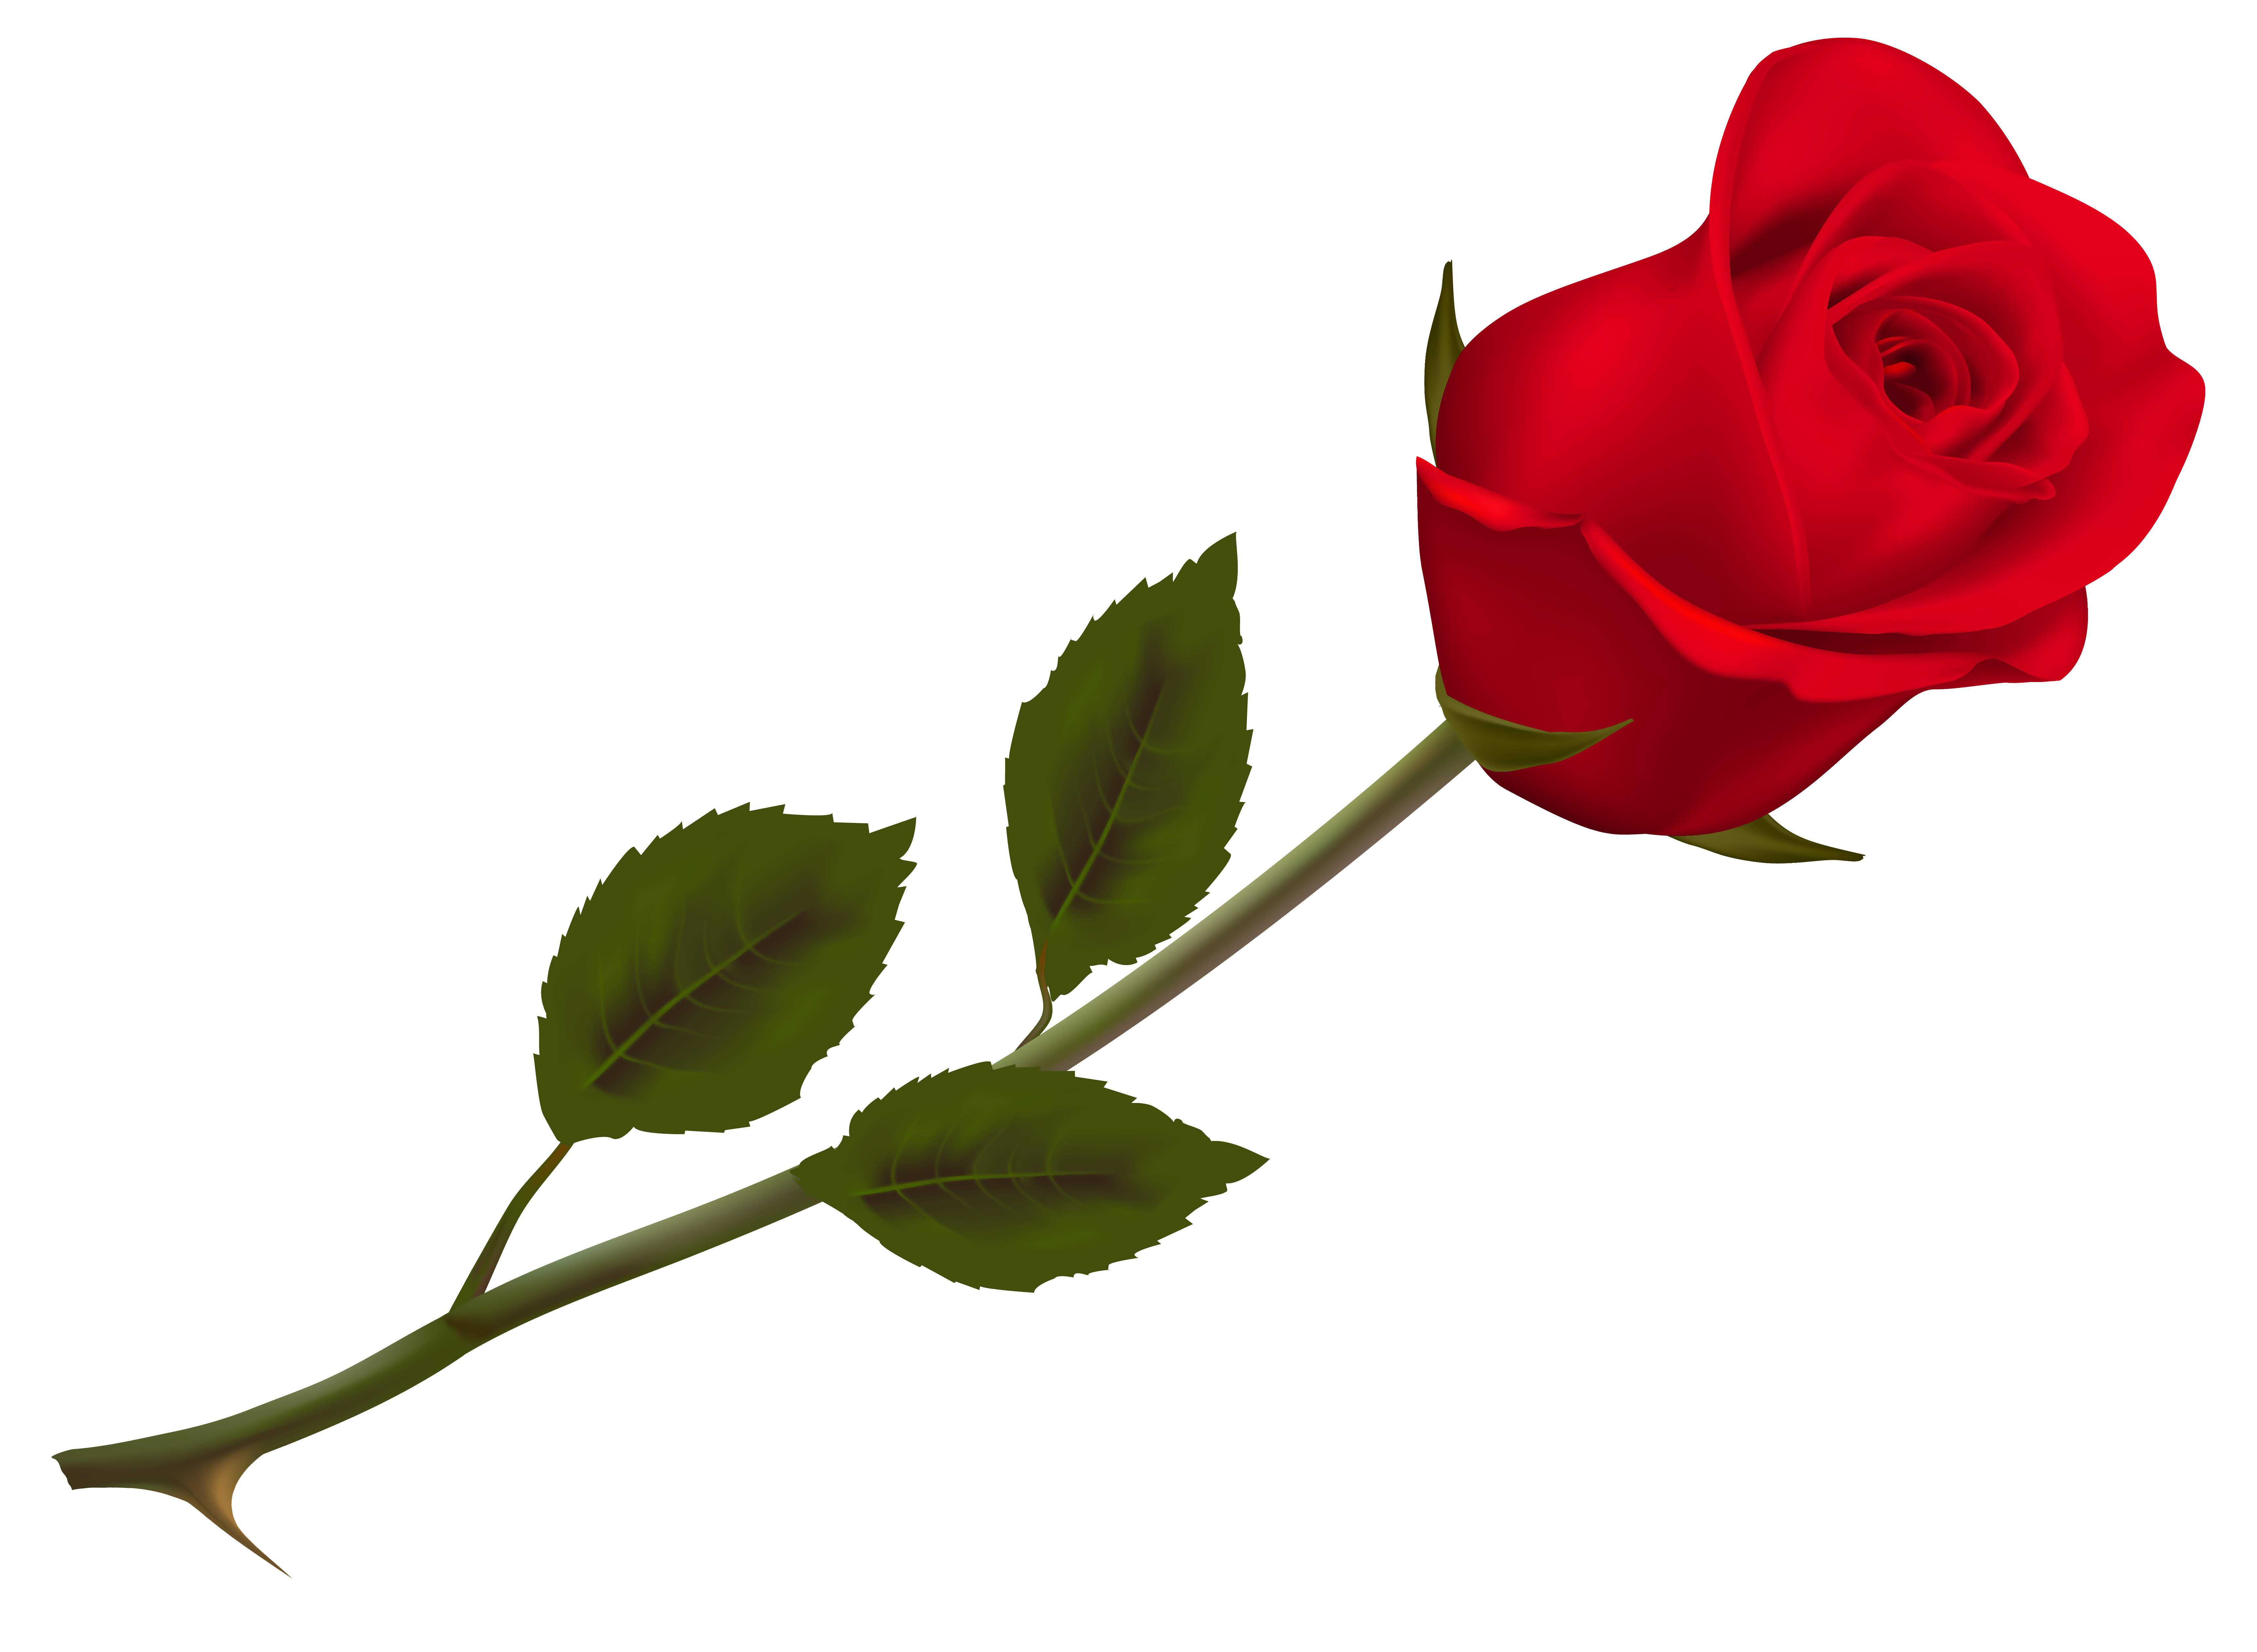 Rose 04 Jpg 6889 5043 Red Rose Png Rose Flower Png Red Roses